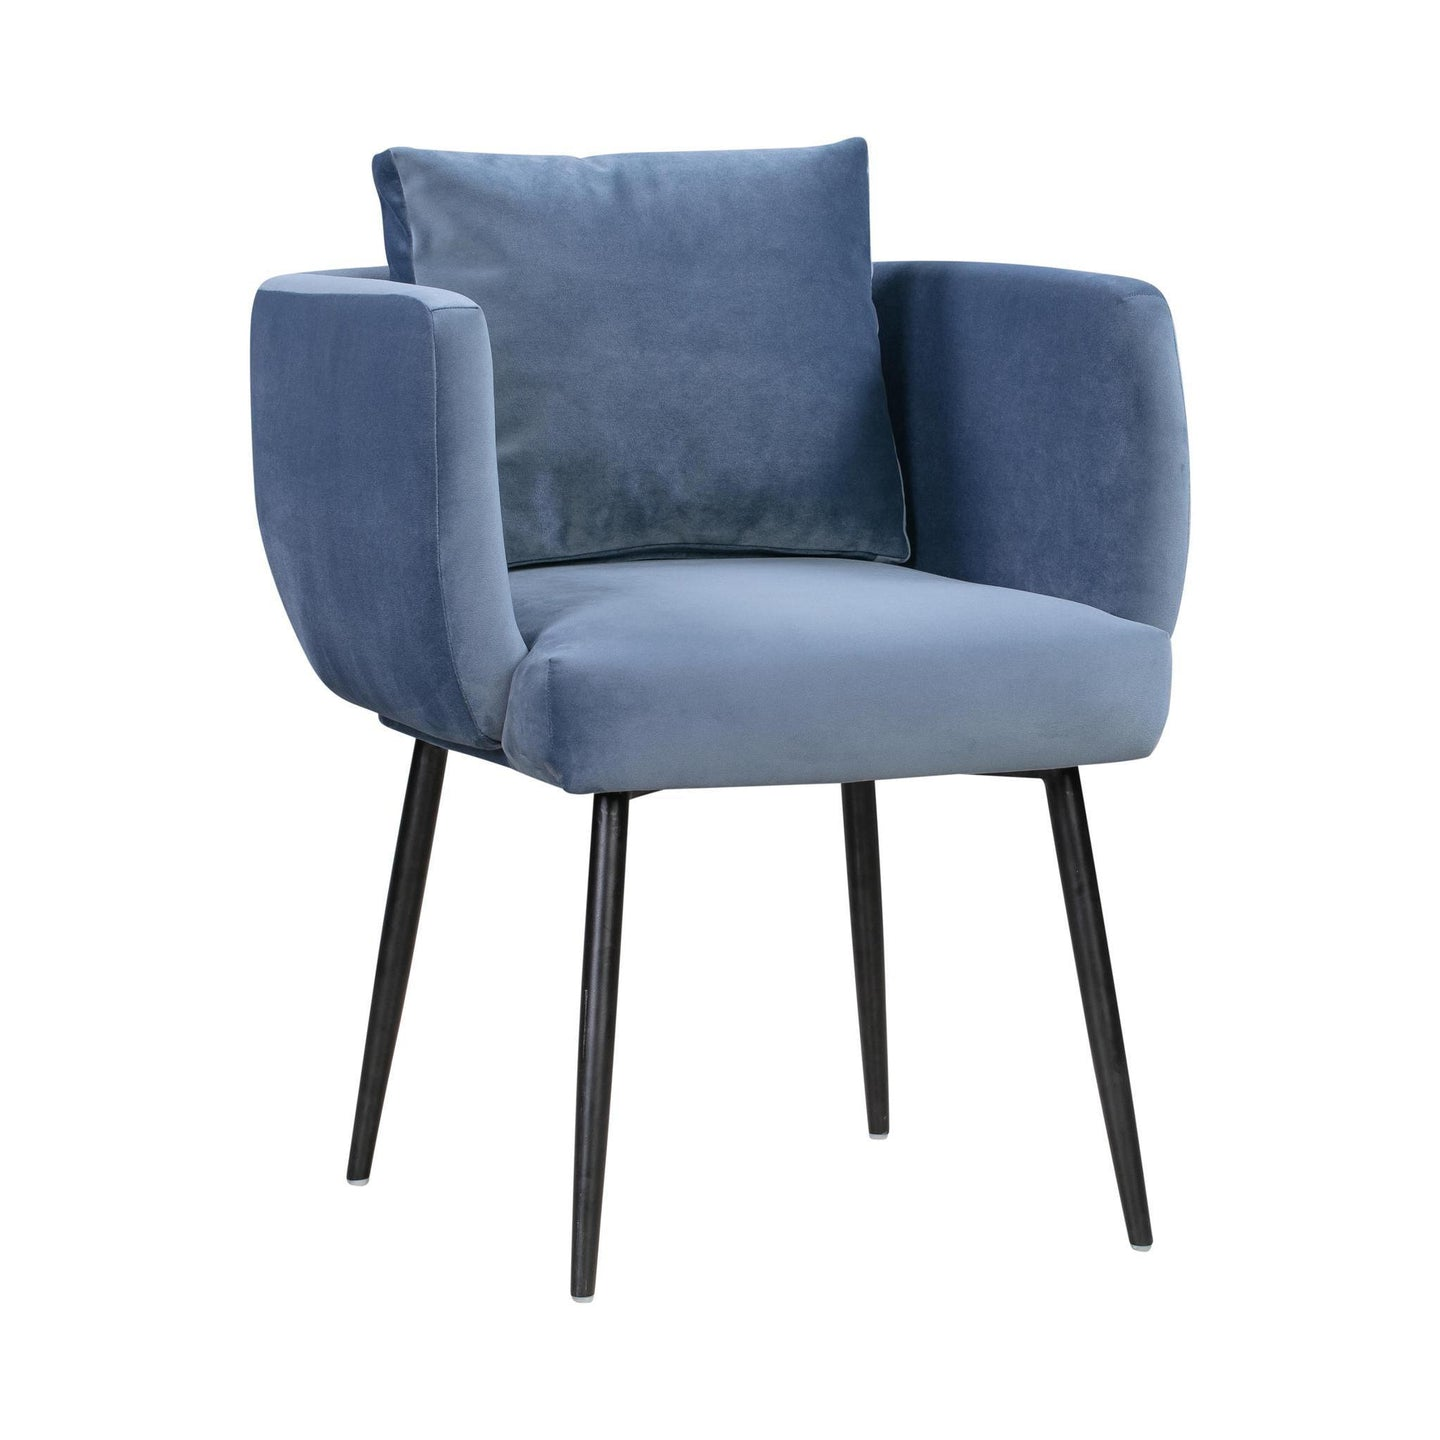 TOV Furniture Modern Alto Cascadia Blue Velvet Chair - TOV Furniture, Minimal & Modern - 1